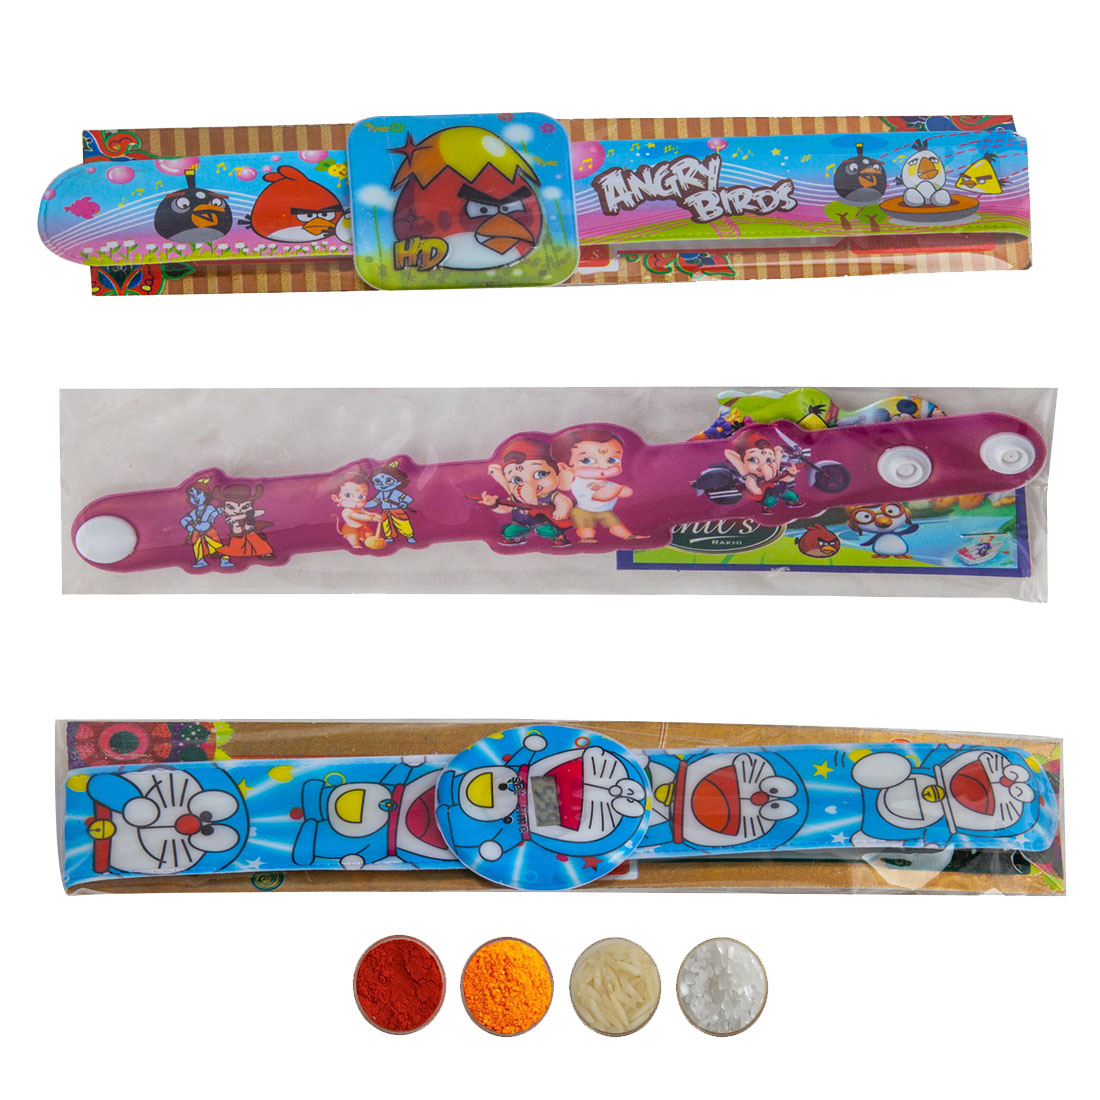 Special Kid's Rakhi set of three